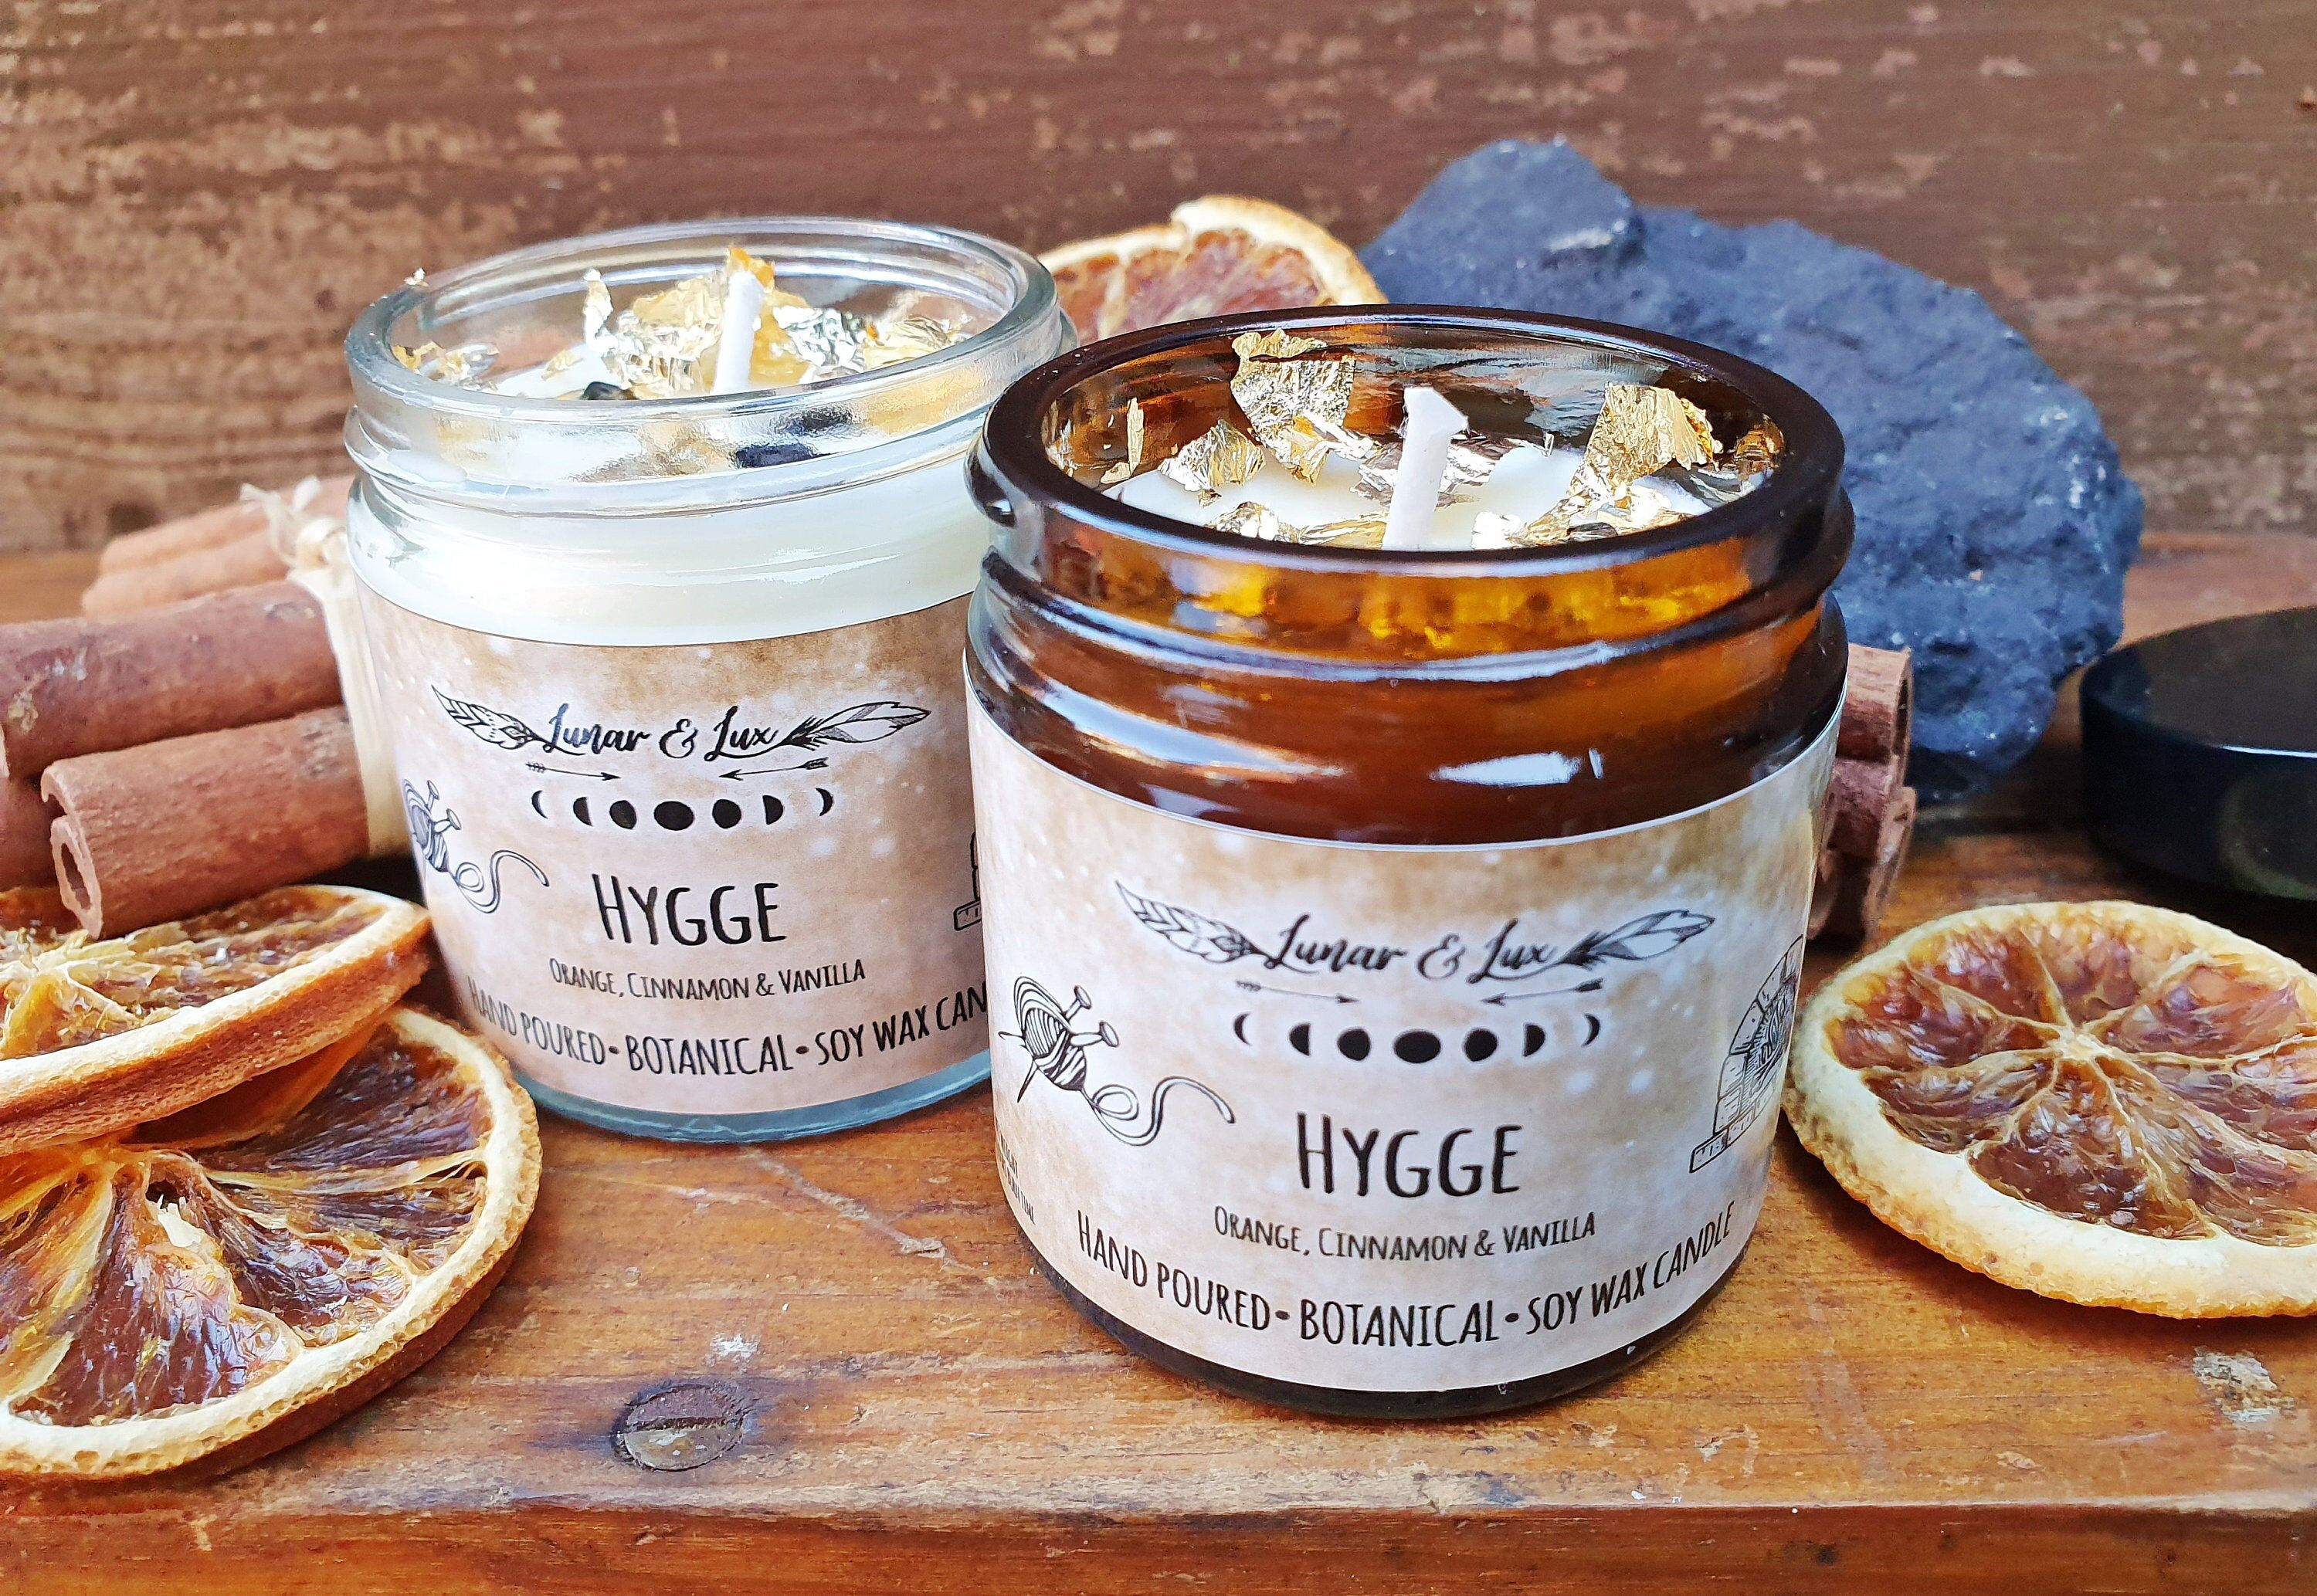 Hygge candle the perfect vegan gift click for more info